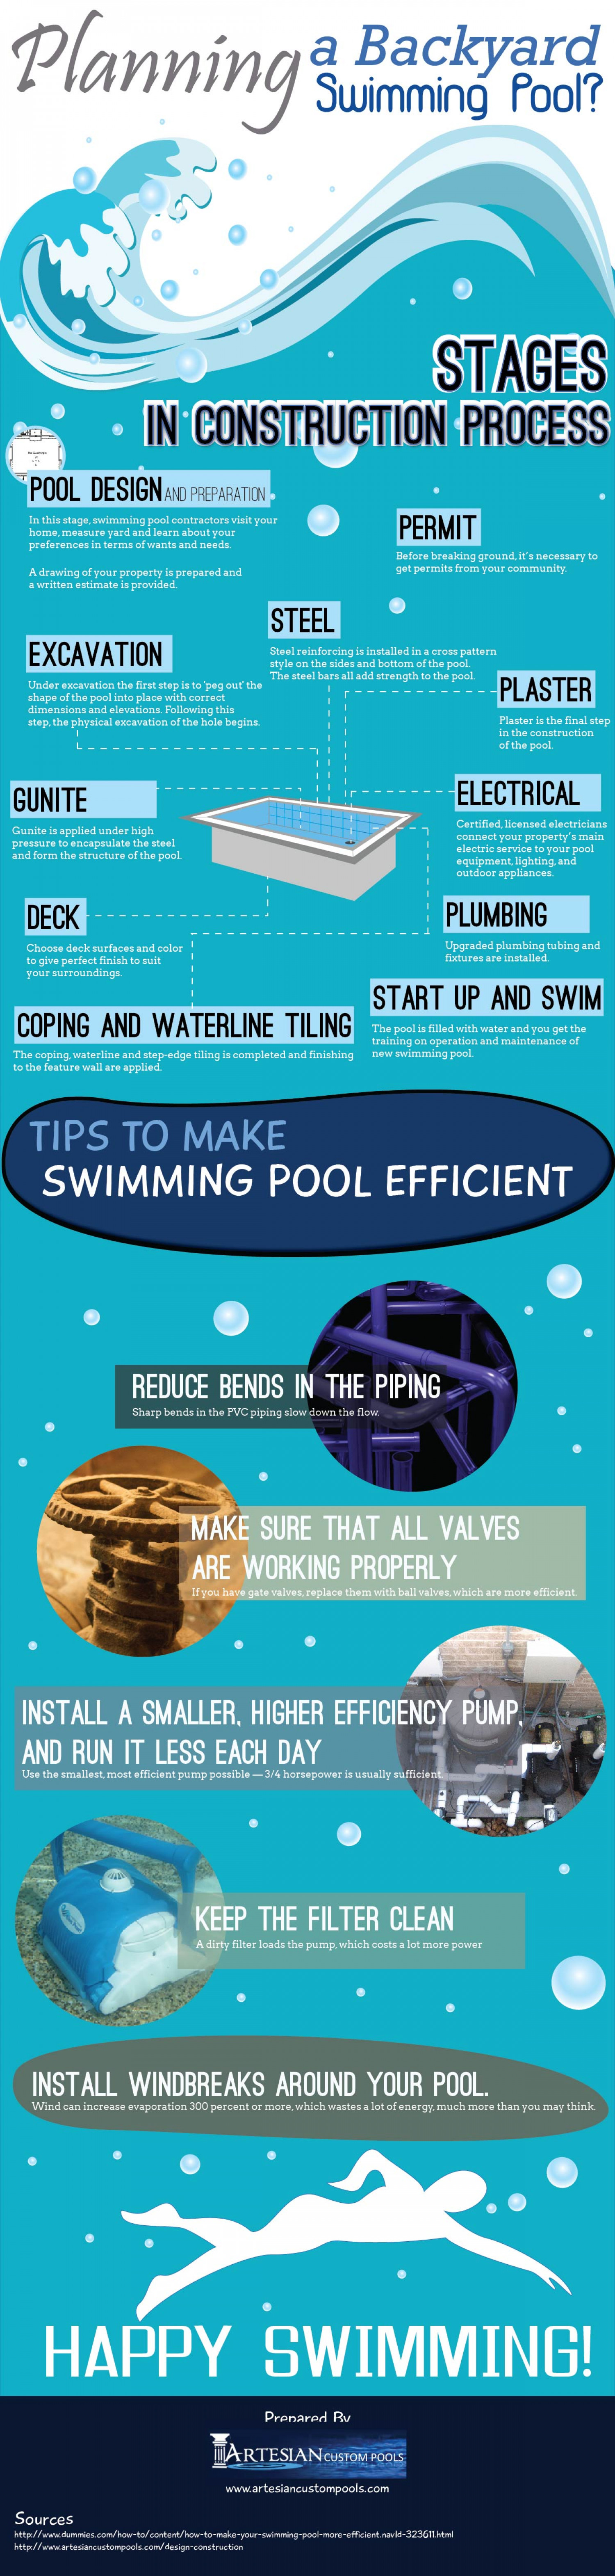 Planning A Backyard Swimming Pool Infographic